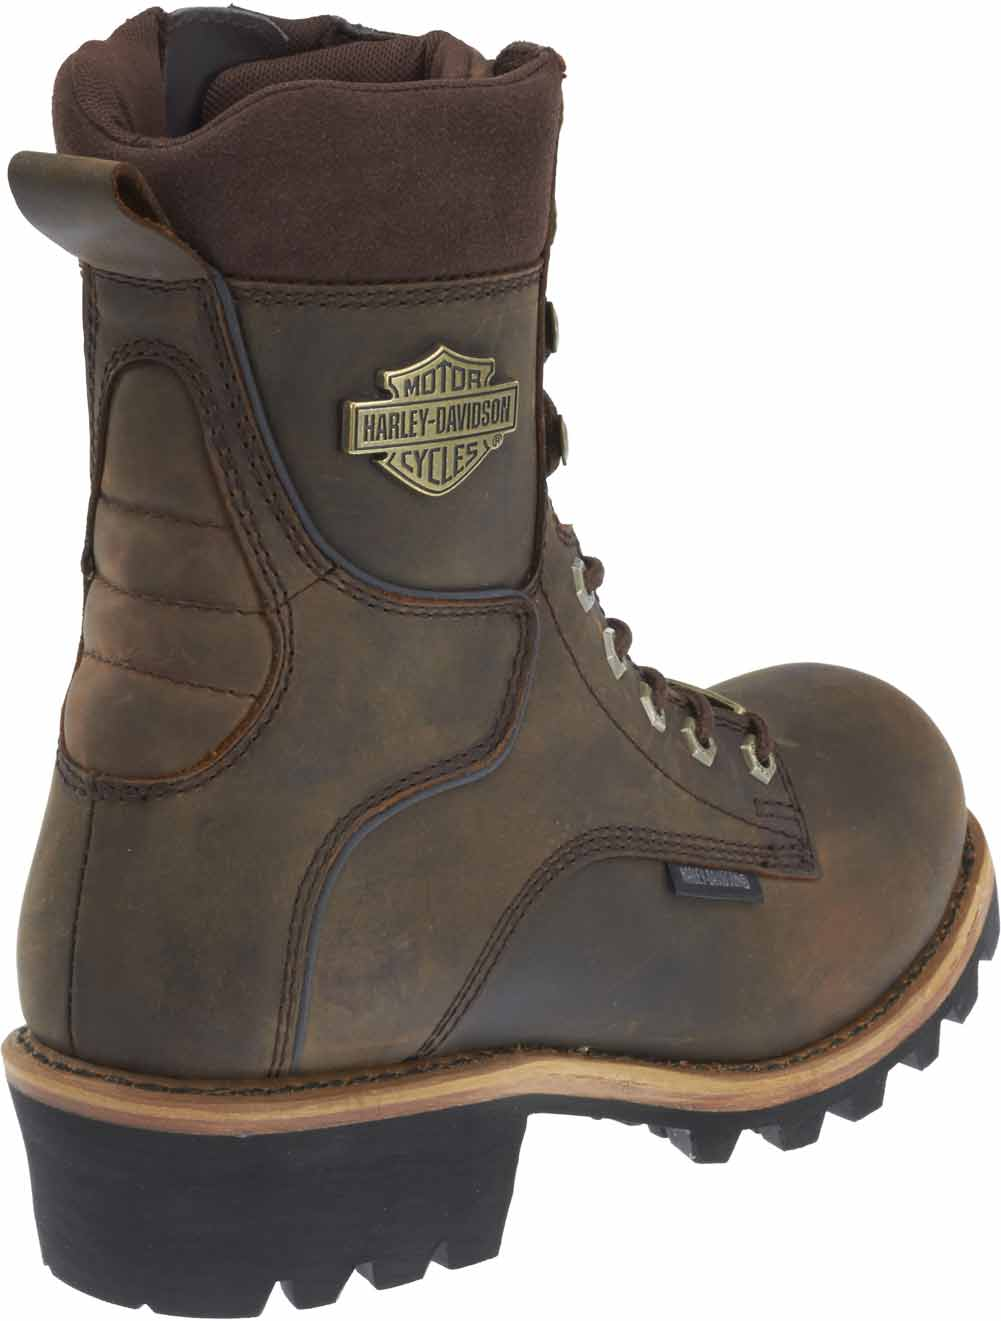 Harley-Davidson Men/'s Tyson 7.5-Inch Brown Logger Style Motorcycle Boots D96100